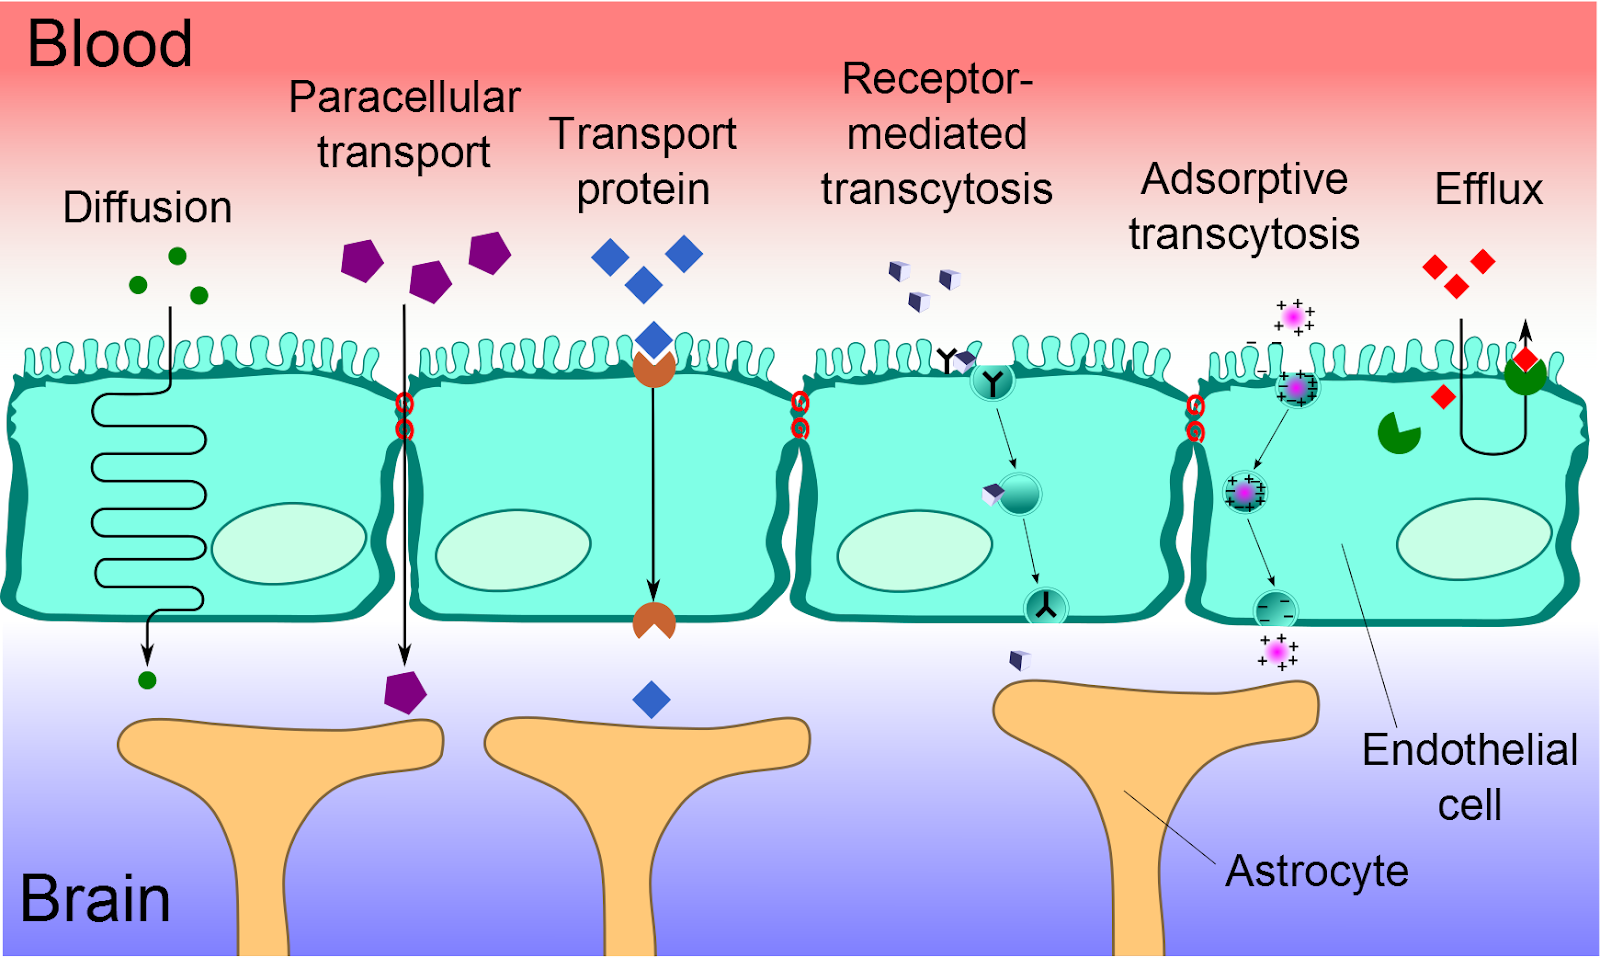 Illustration by Armin Kübelbeck, showing the different types of transportation through the blood-brain barrier. https://commons.wikimedia.org/wiki/File:Blood-brain_barrier_transport_ca.png